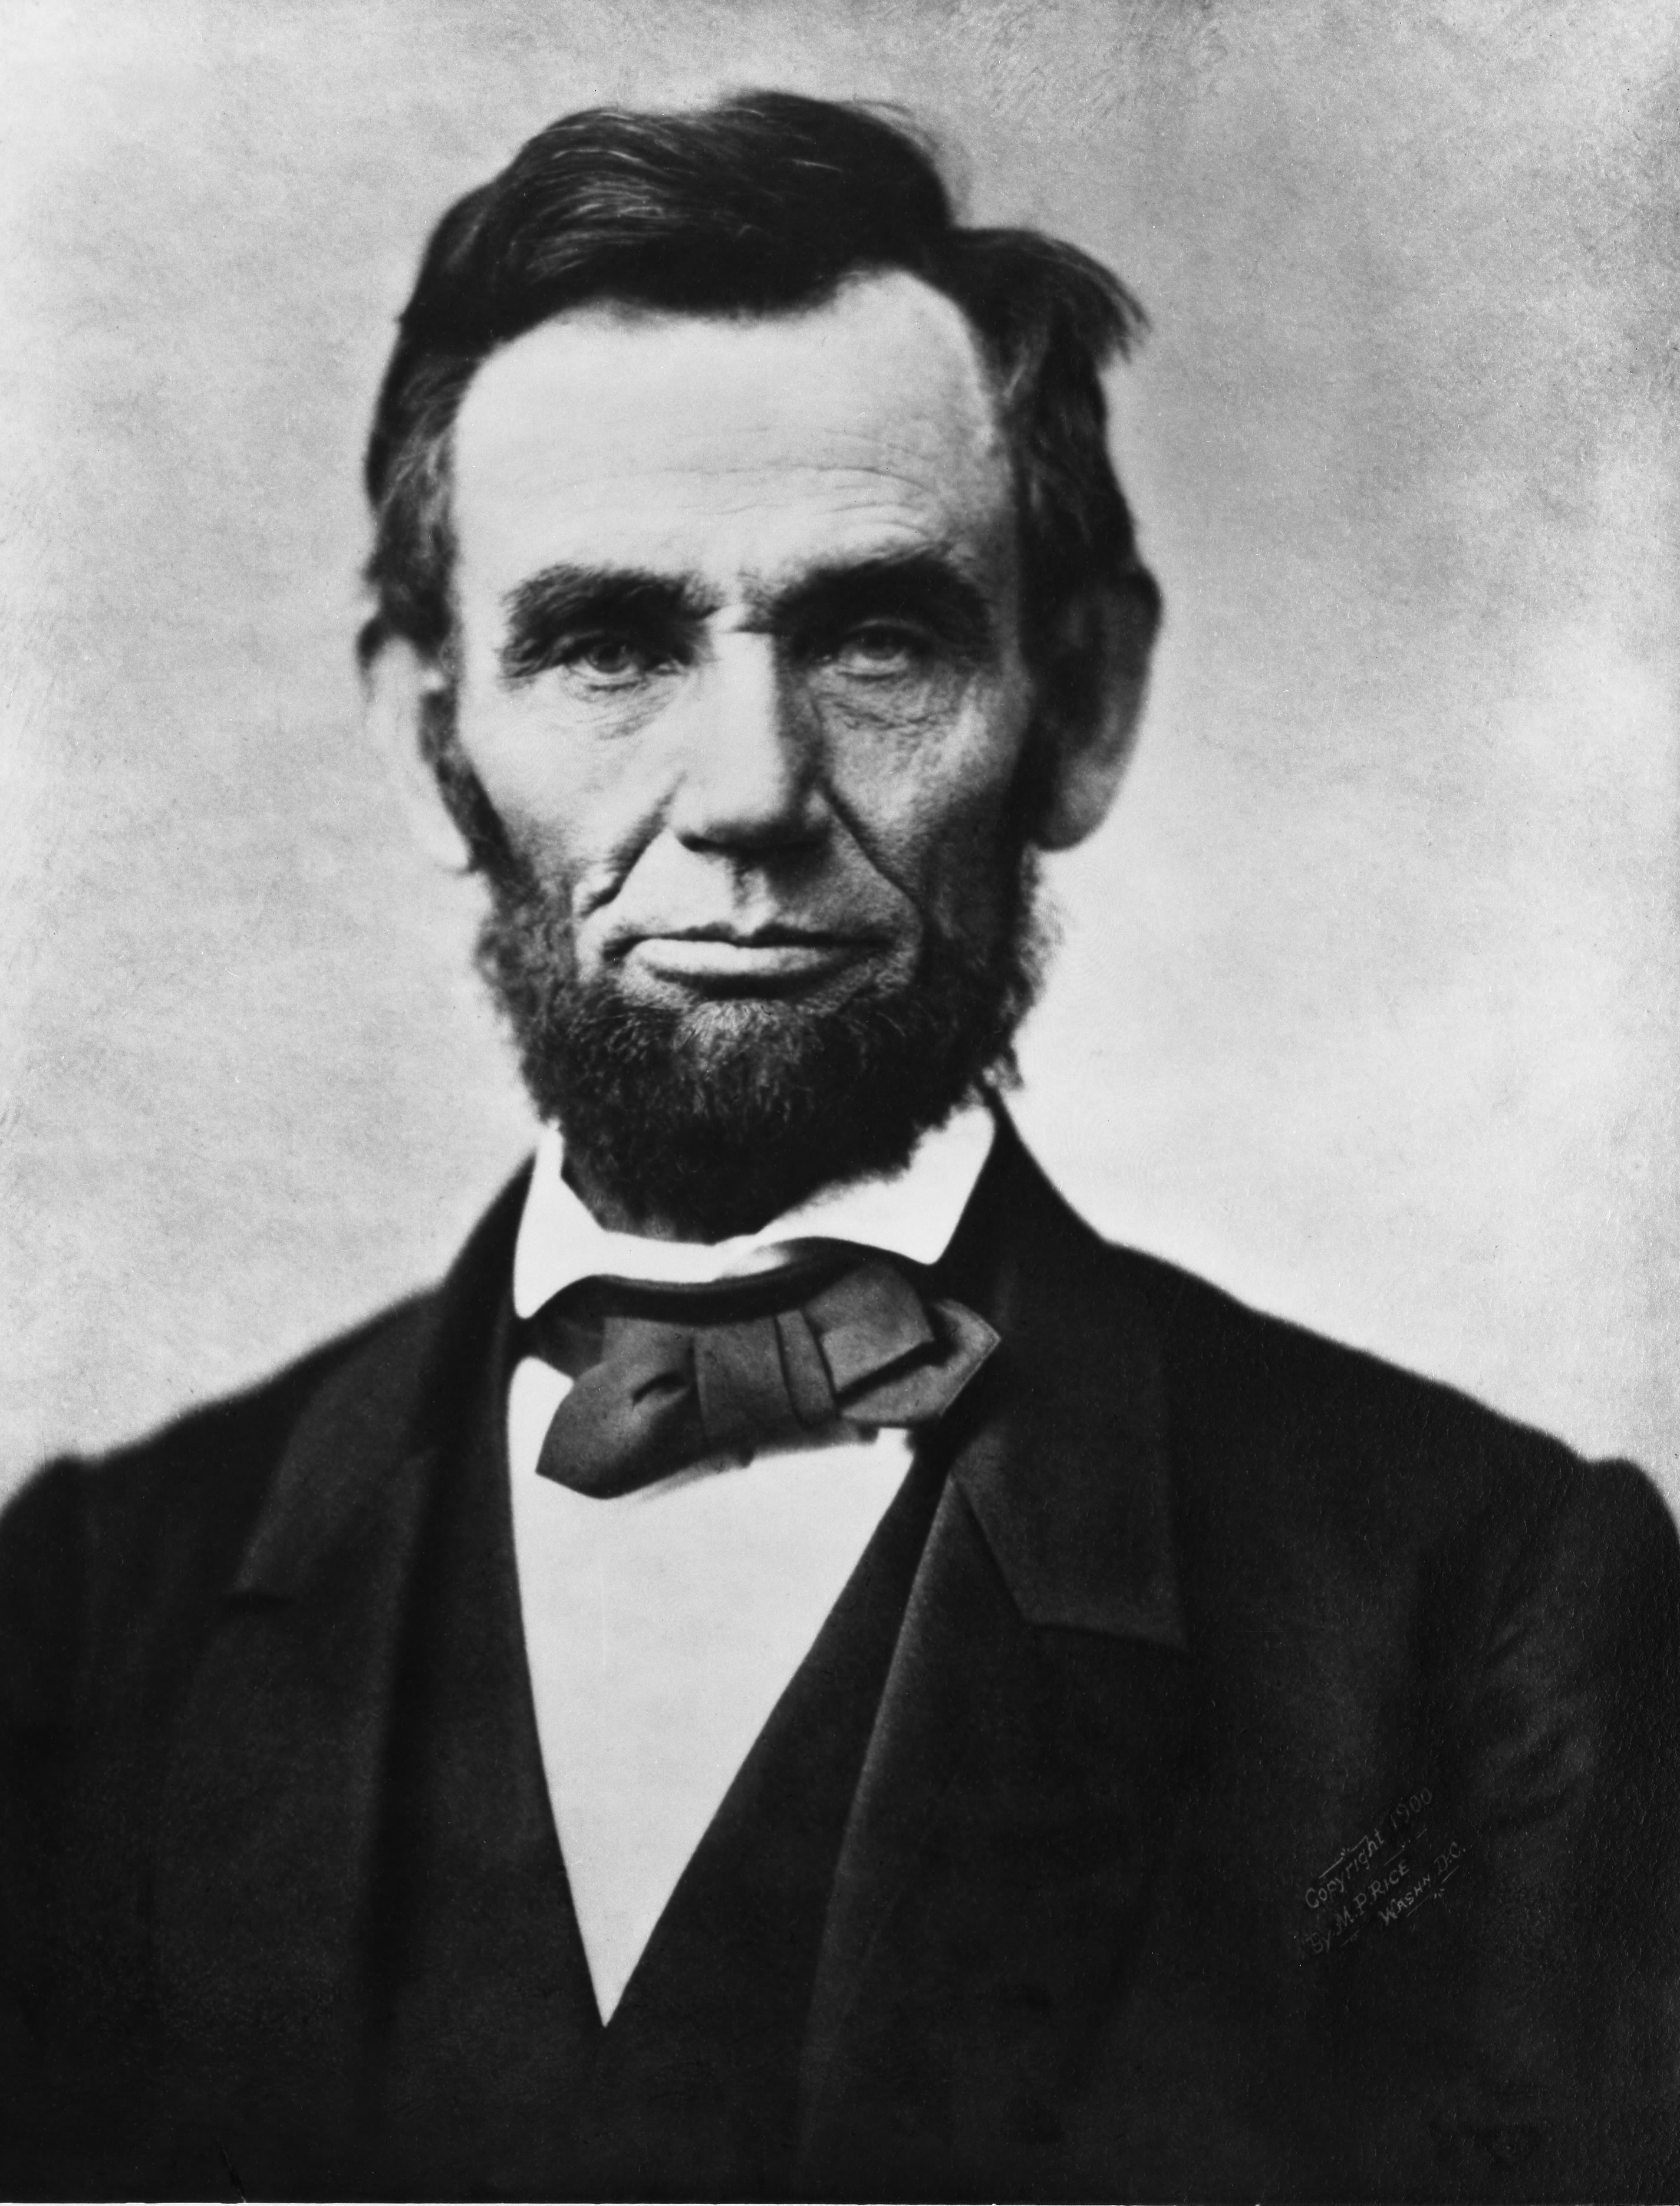 A photograph of Abraham Lincoln